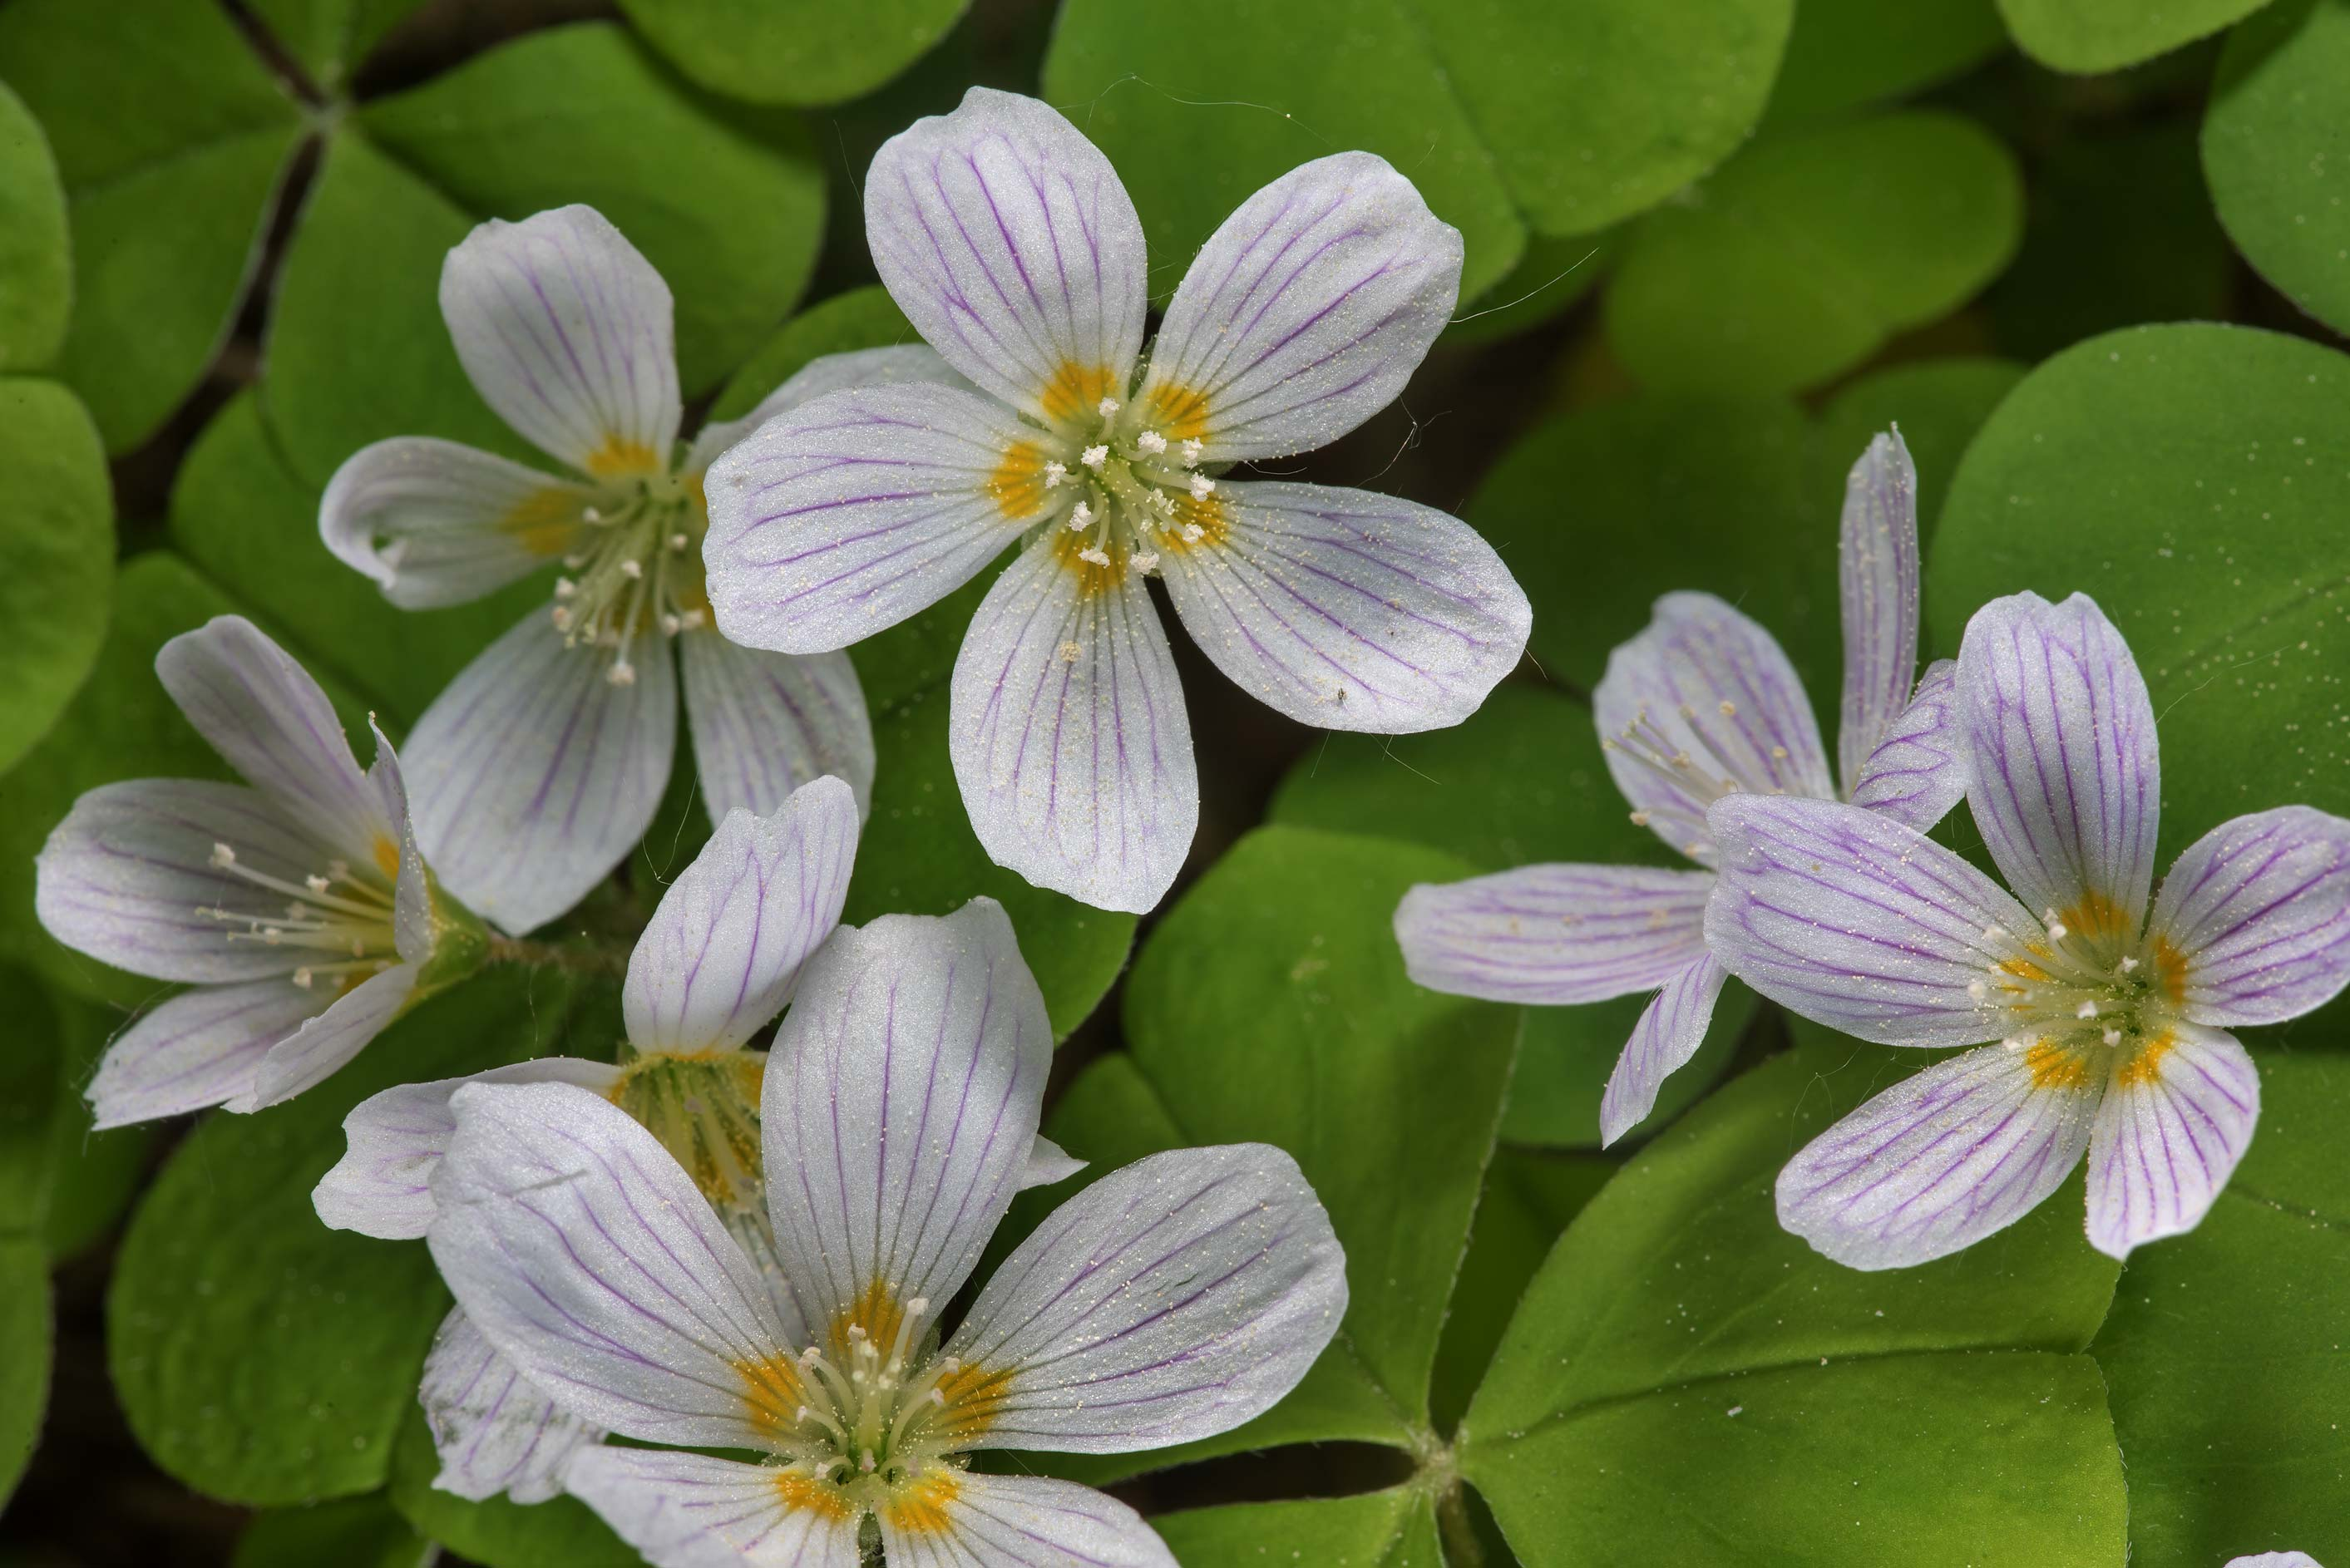 Wood sorrel (Oxalis acetosella, Russian name...a suburb of St.Petersburg, Russia